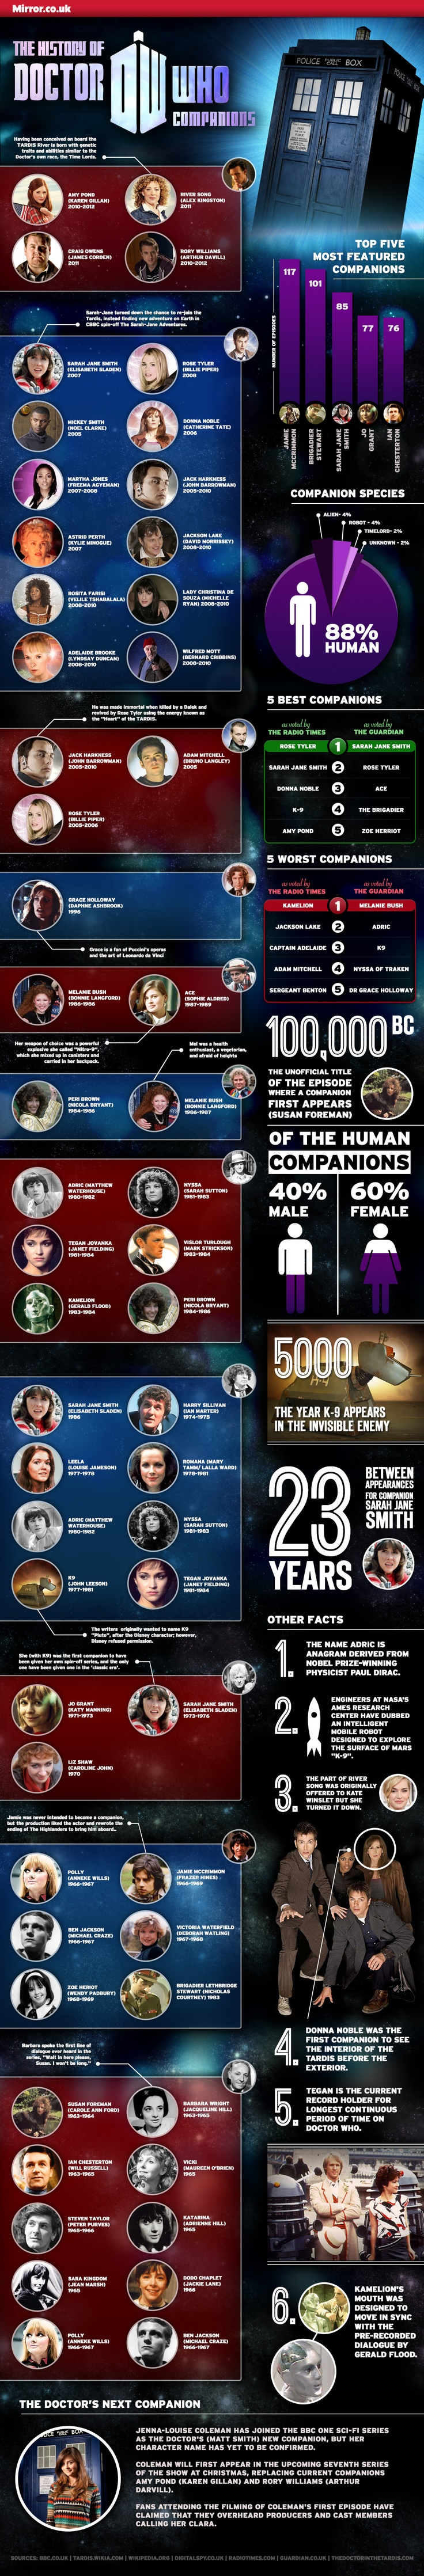 Awesome! Except... Why are Jackson Lake and Adelaide Brook voted some of the worst companions?! They're some of my favorites of the short time companions!